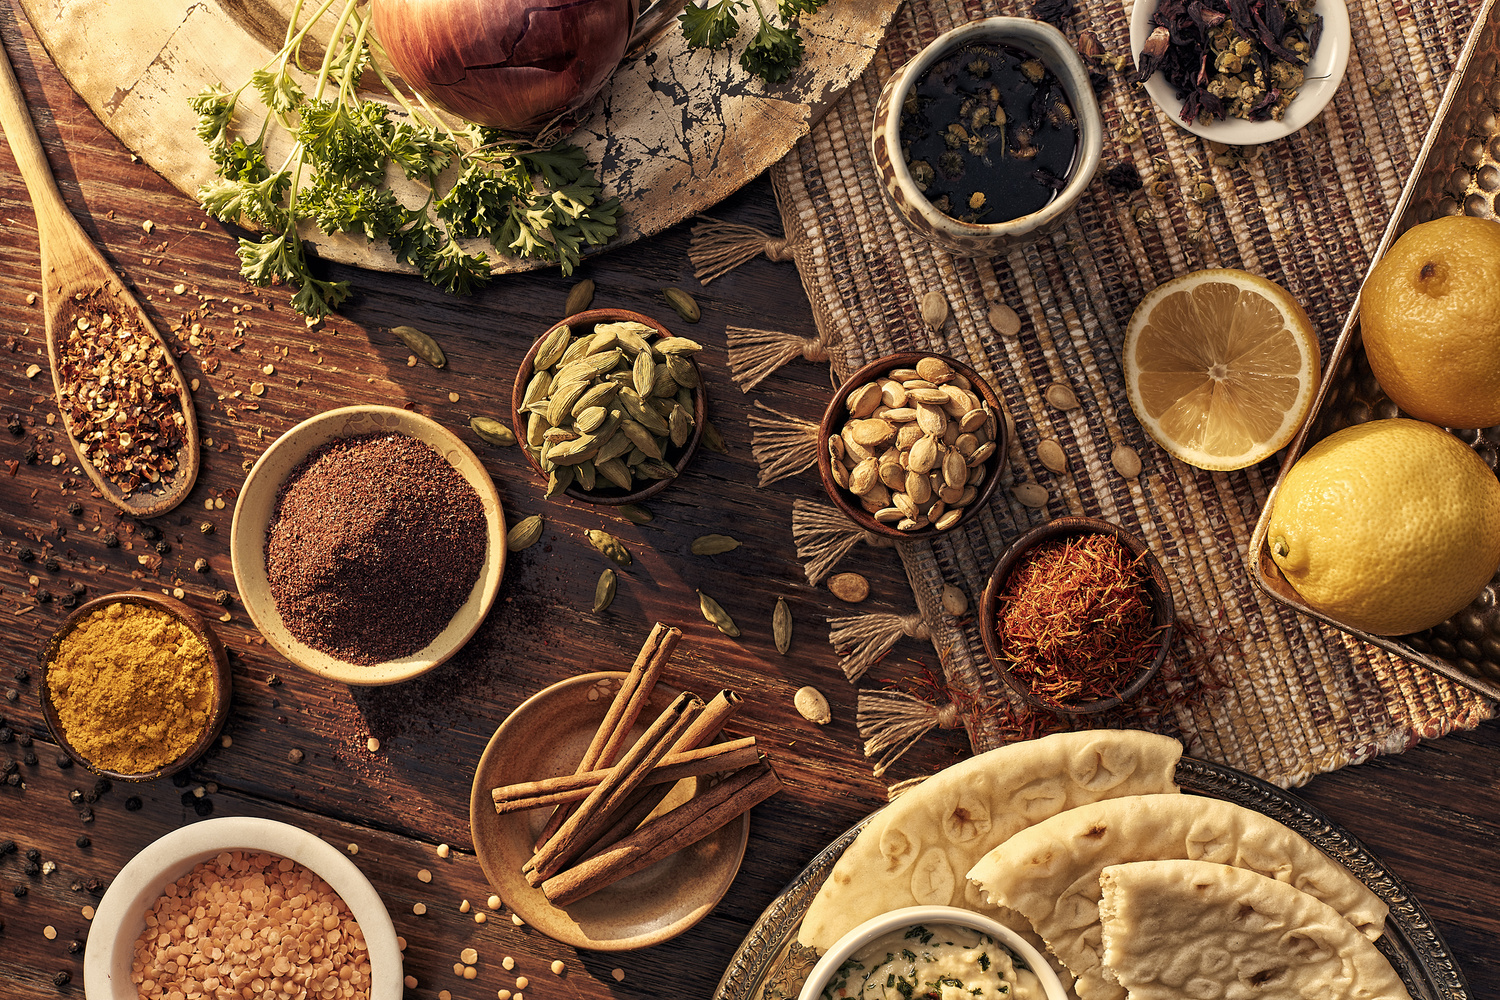 World Spices by Ryan Hill